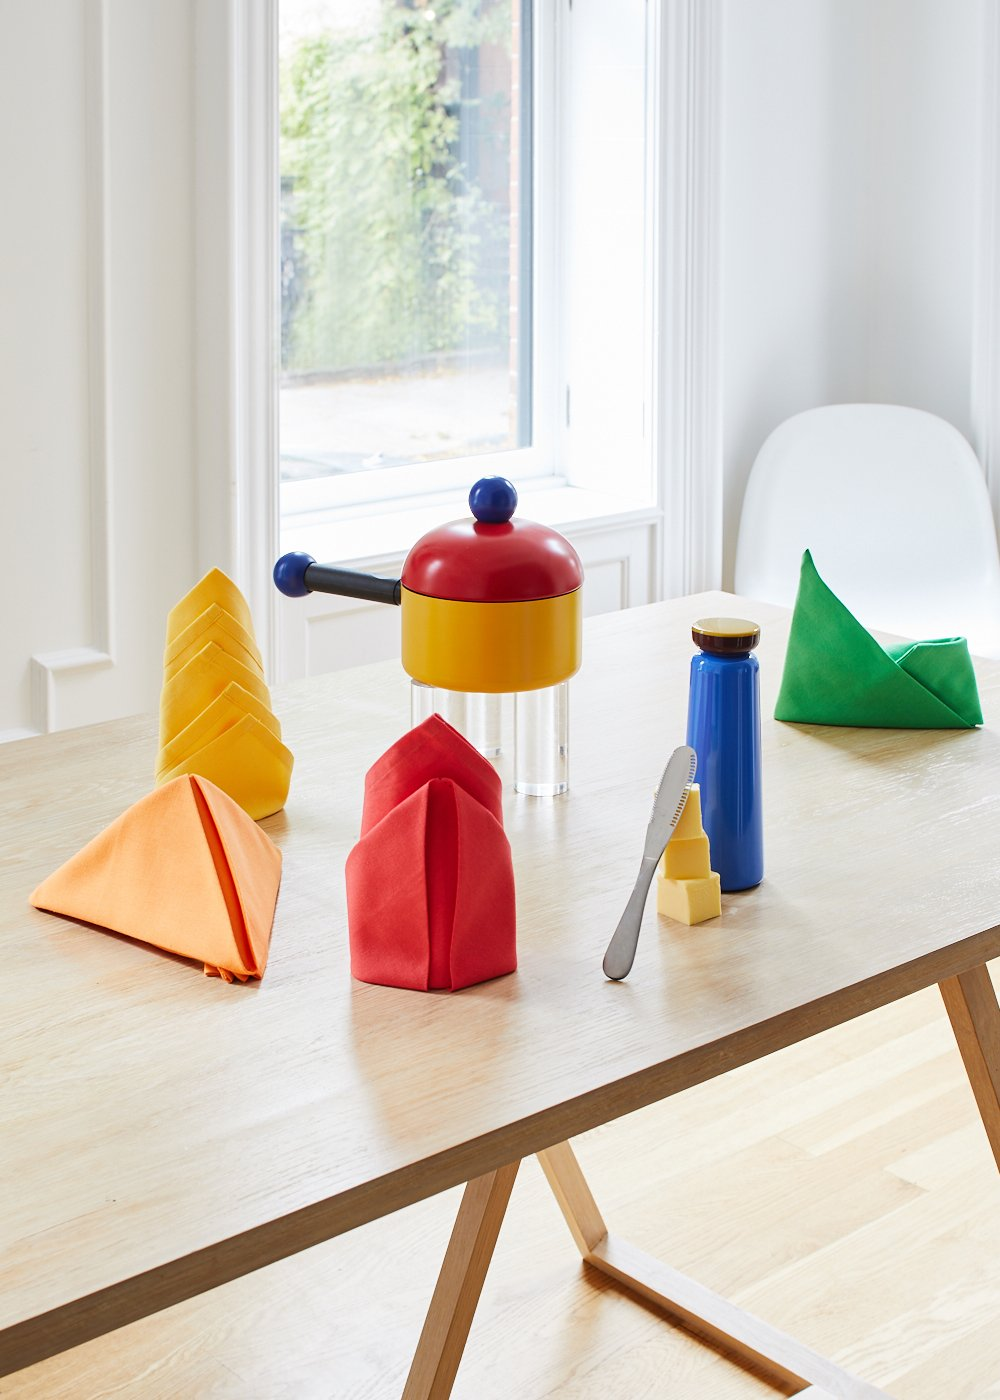 MoMA Design Store Holiday Gifts